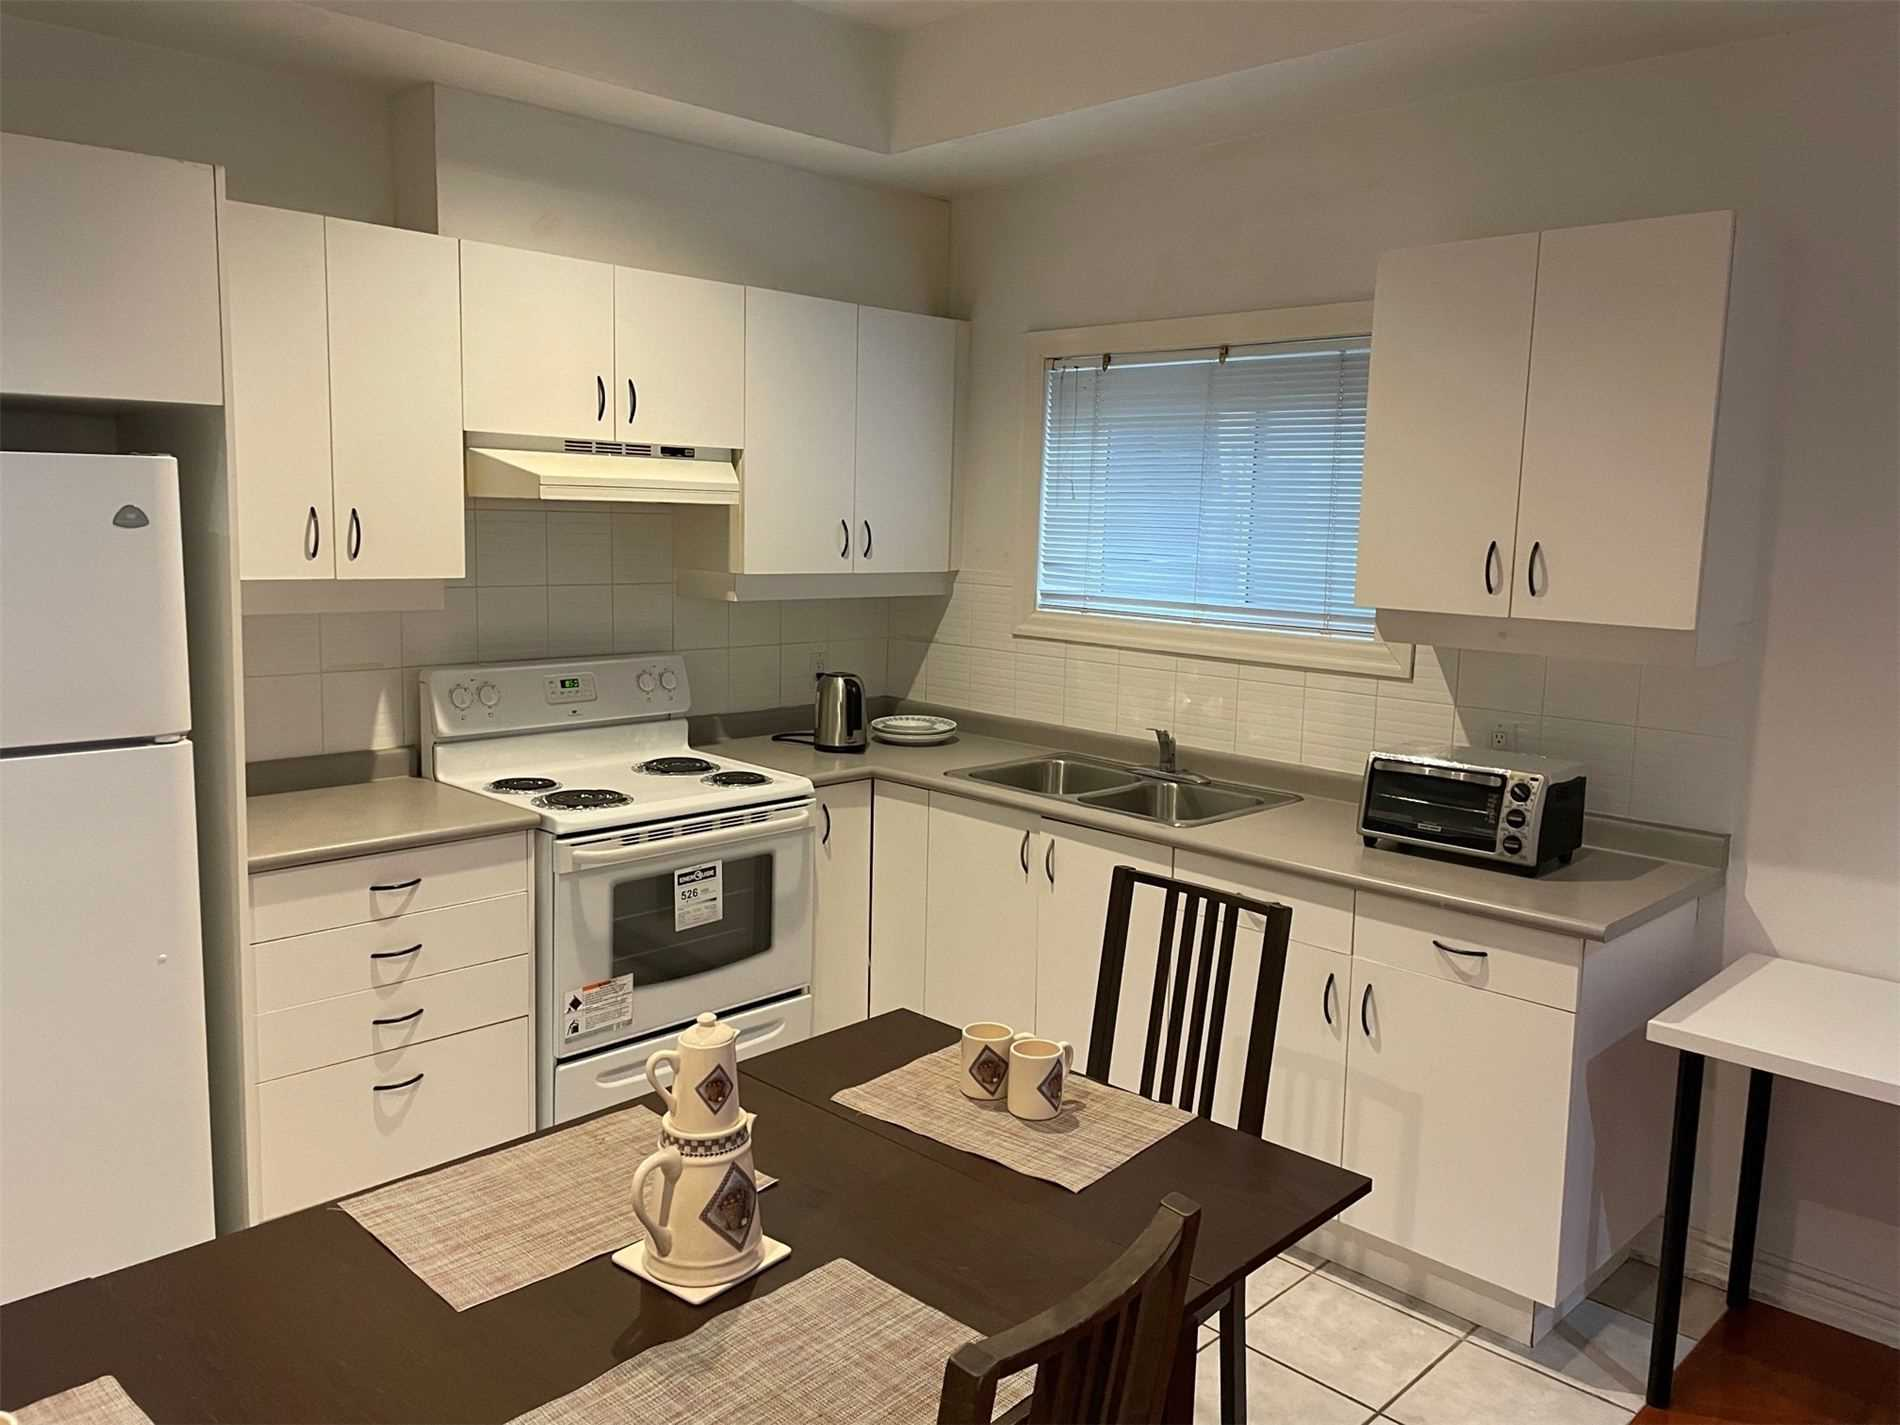 Image 7 of 10 showing inside of 1 Bedroom Detached 2-Storey for Lease at 40 Madawaska Ave, Toronto M2M2P9